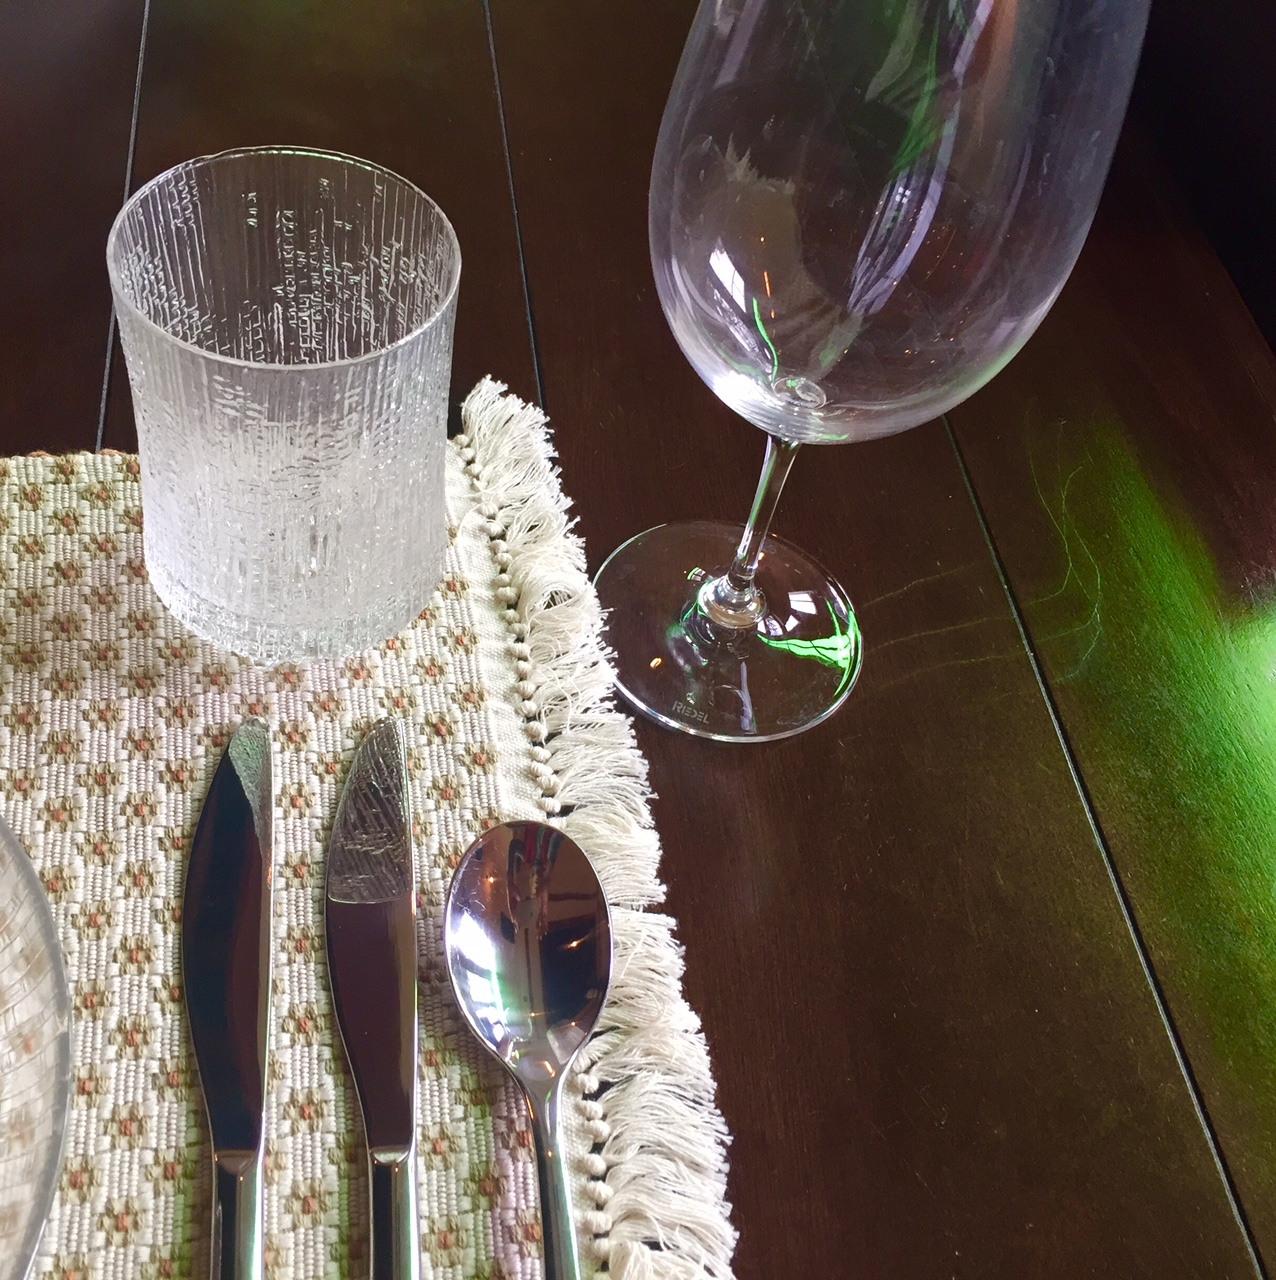 Wine And Other Glasses On Your Table